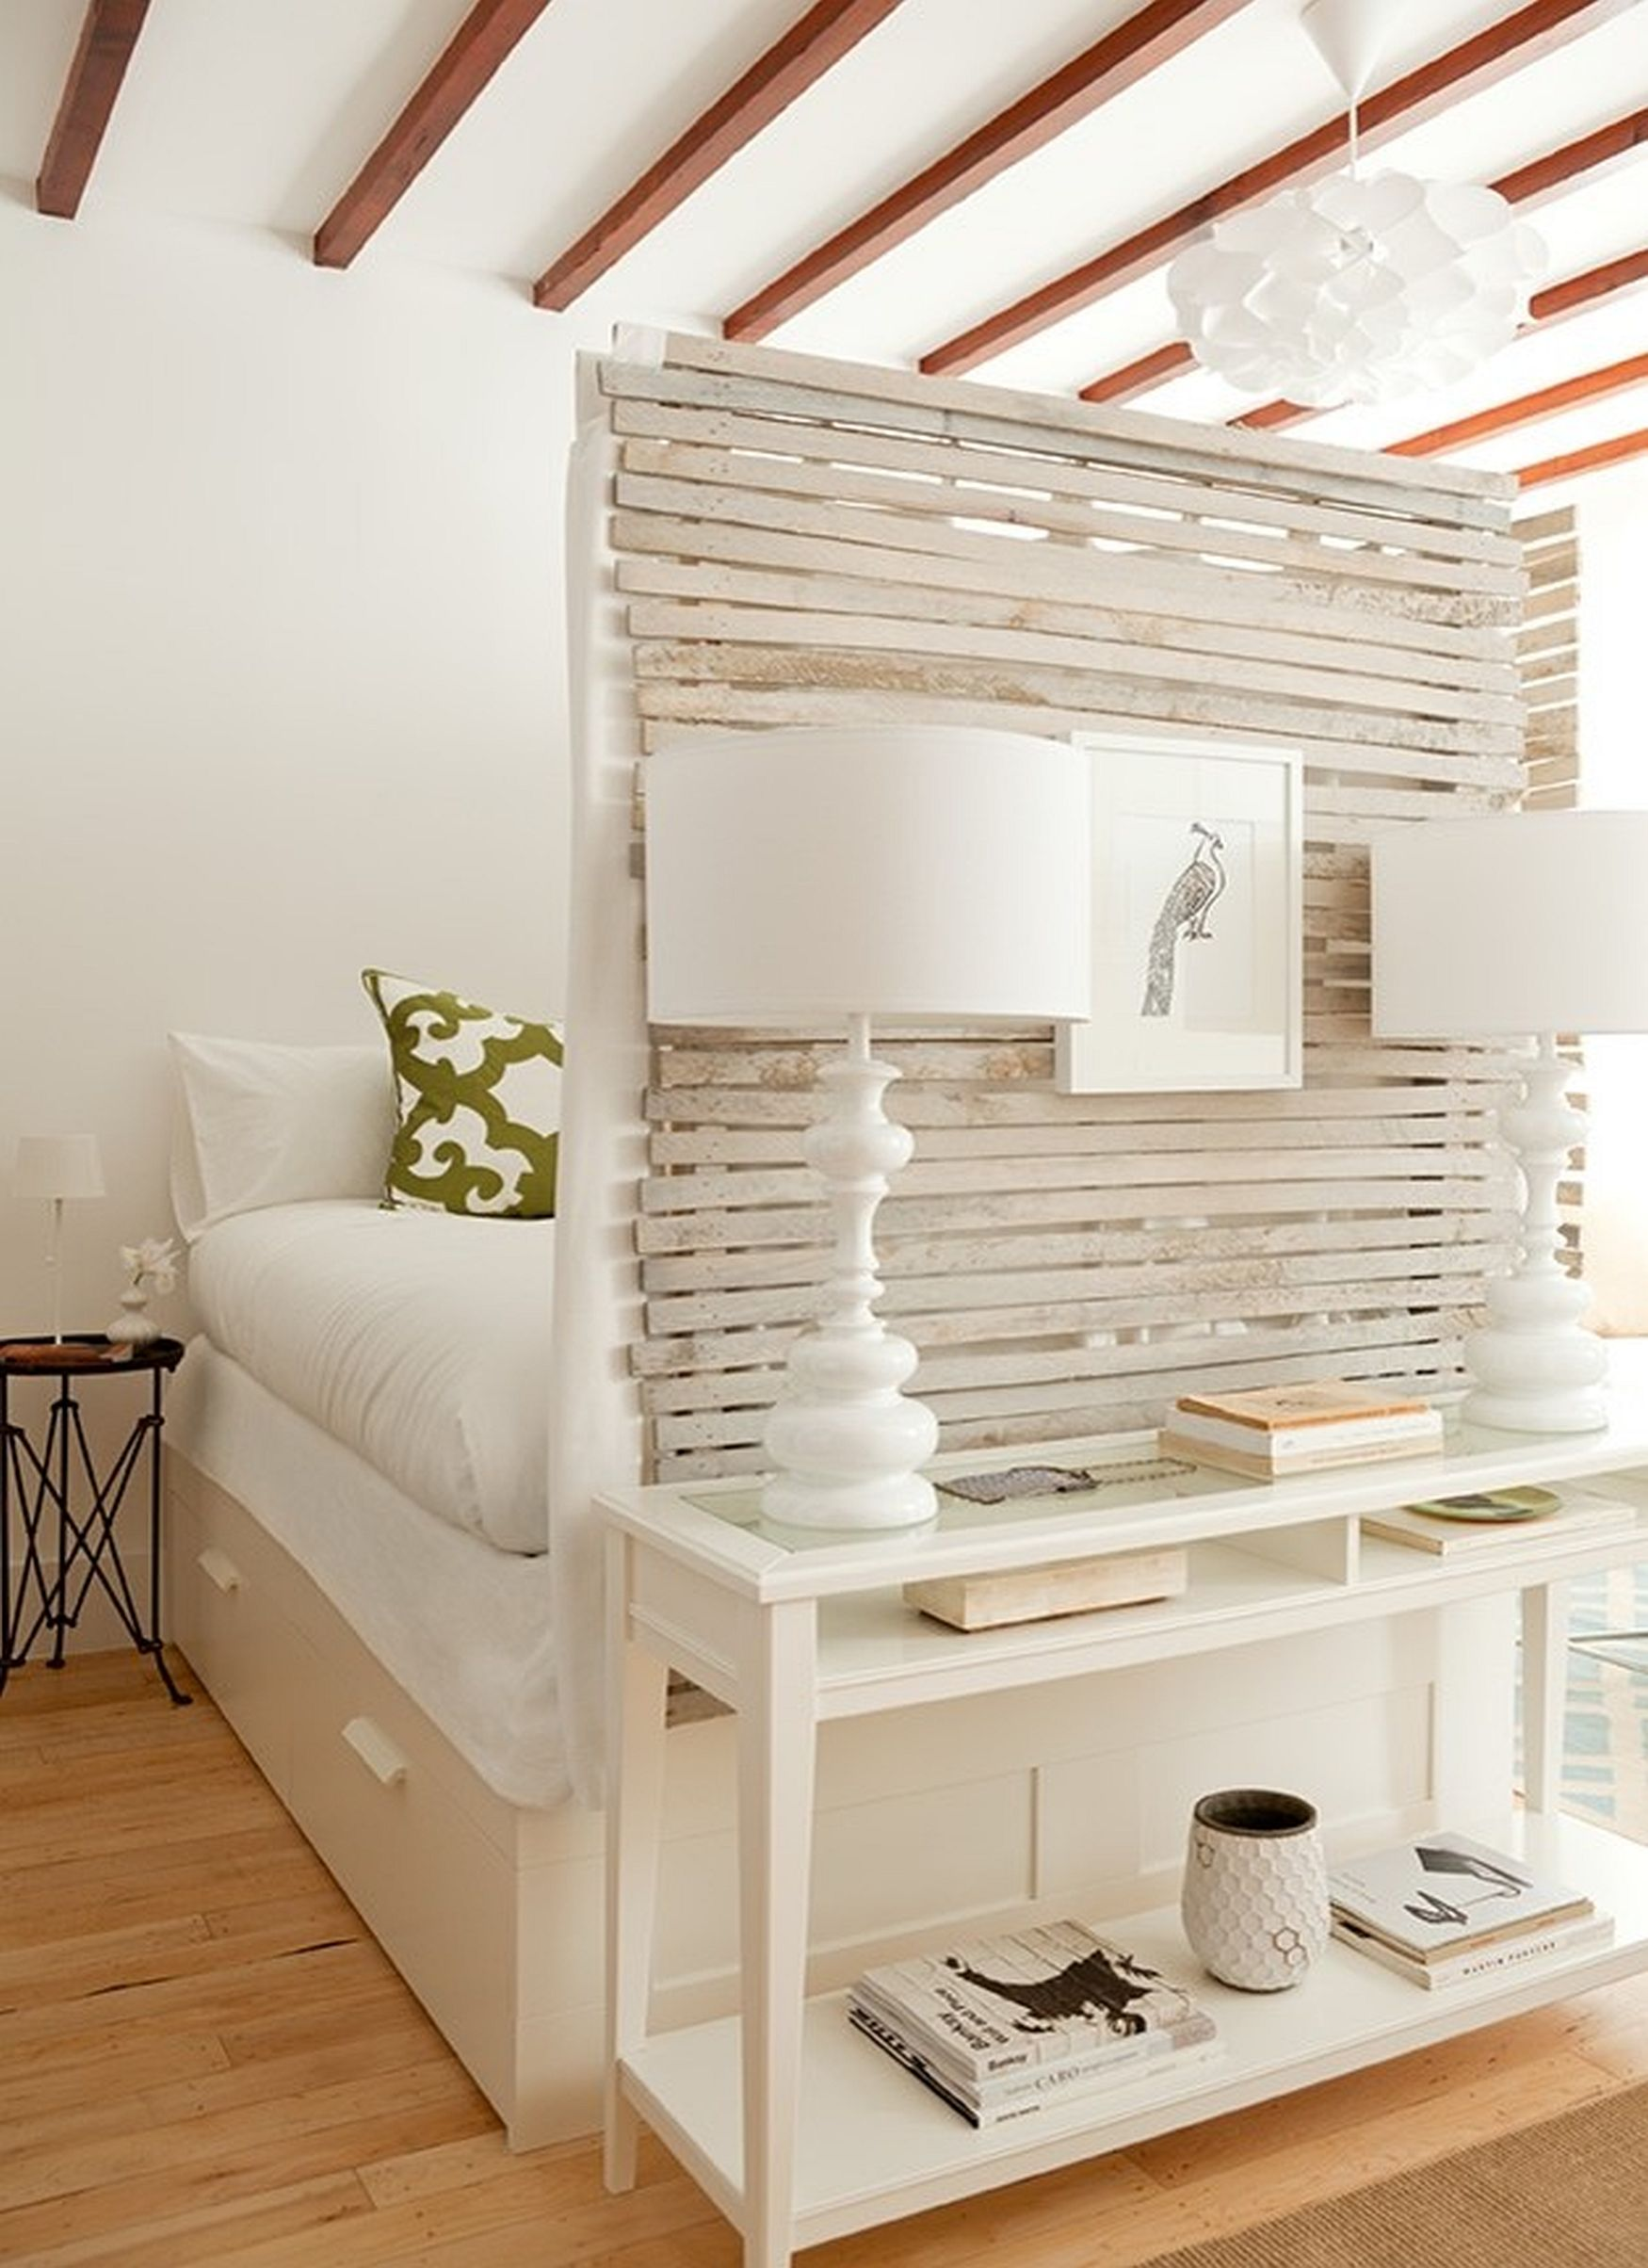 Creative Room Divider Ideas 15 Creative Room Dividers For The Space Savvy And Trendy